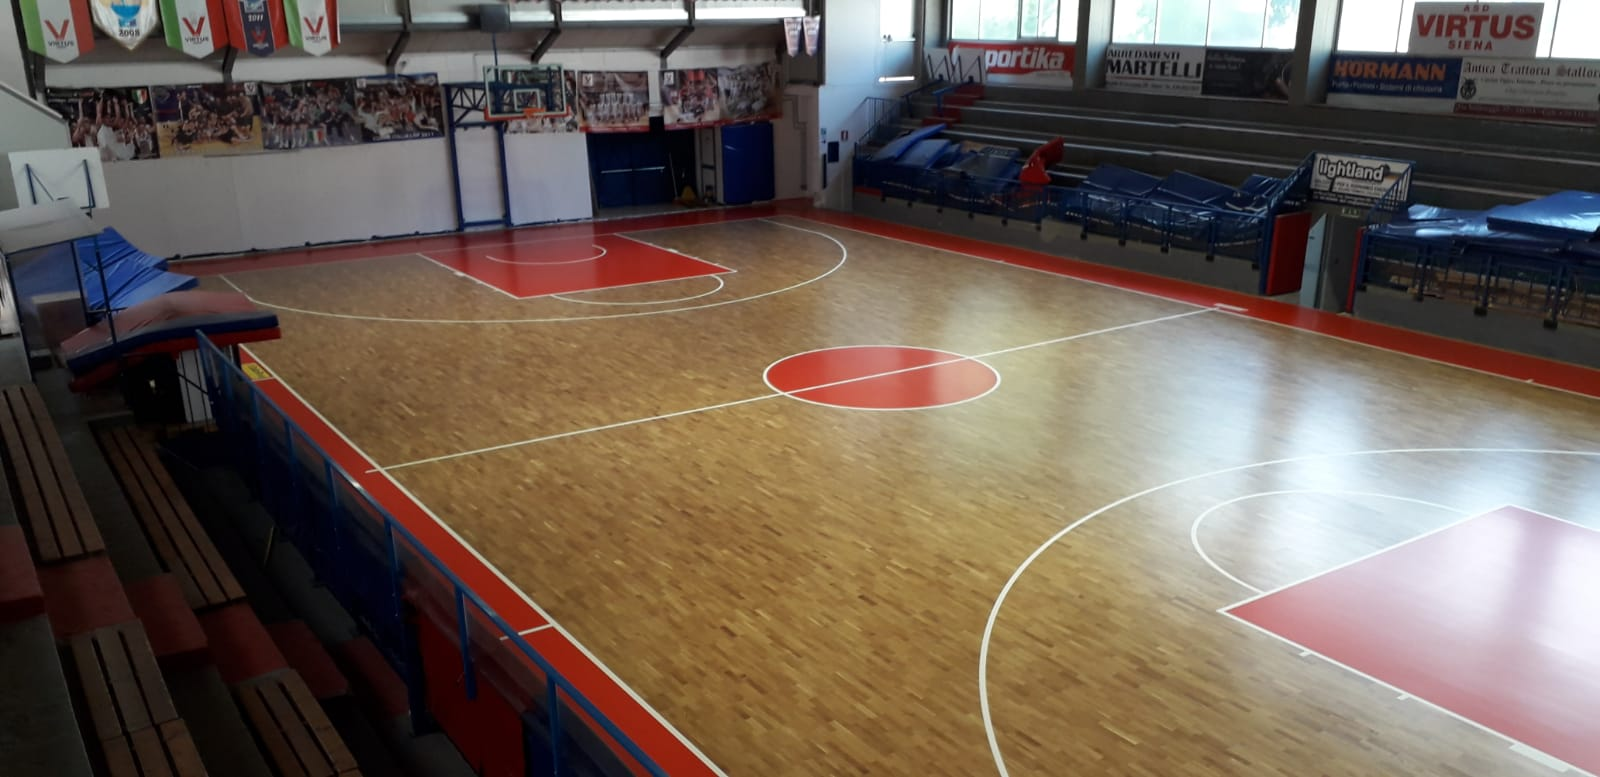 The new wooden sports flooring